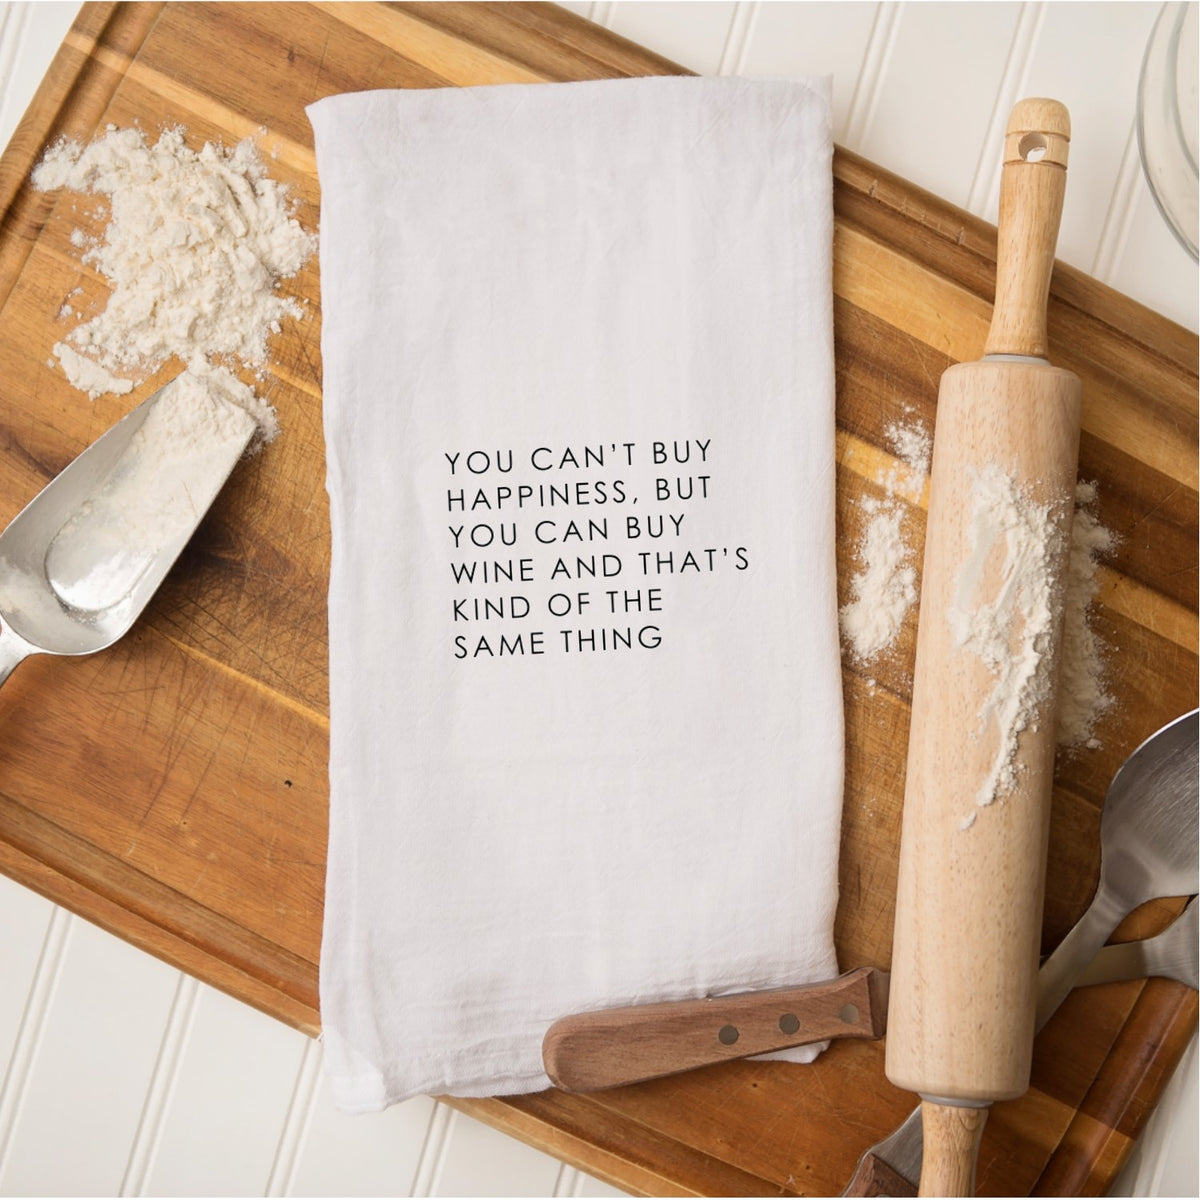 Tea Towel - You Can't Buy Happiness But You Can Buy Wine